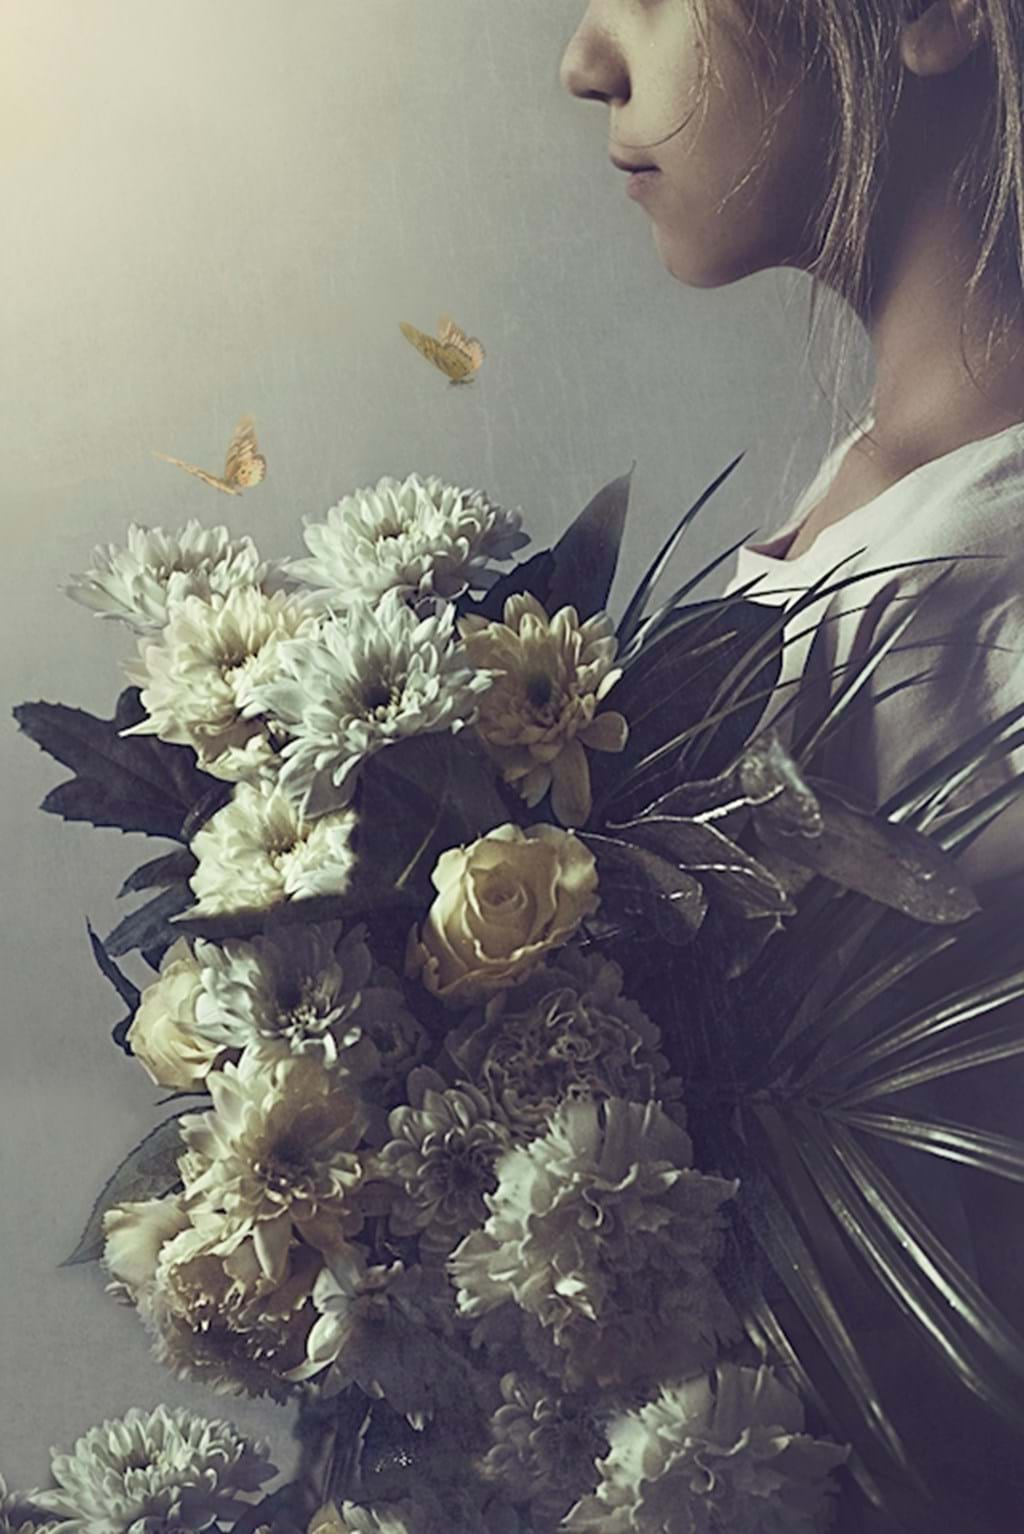 Poster: The girl with the bouquet - Digital